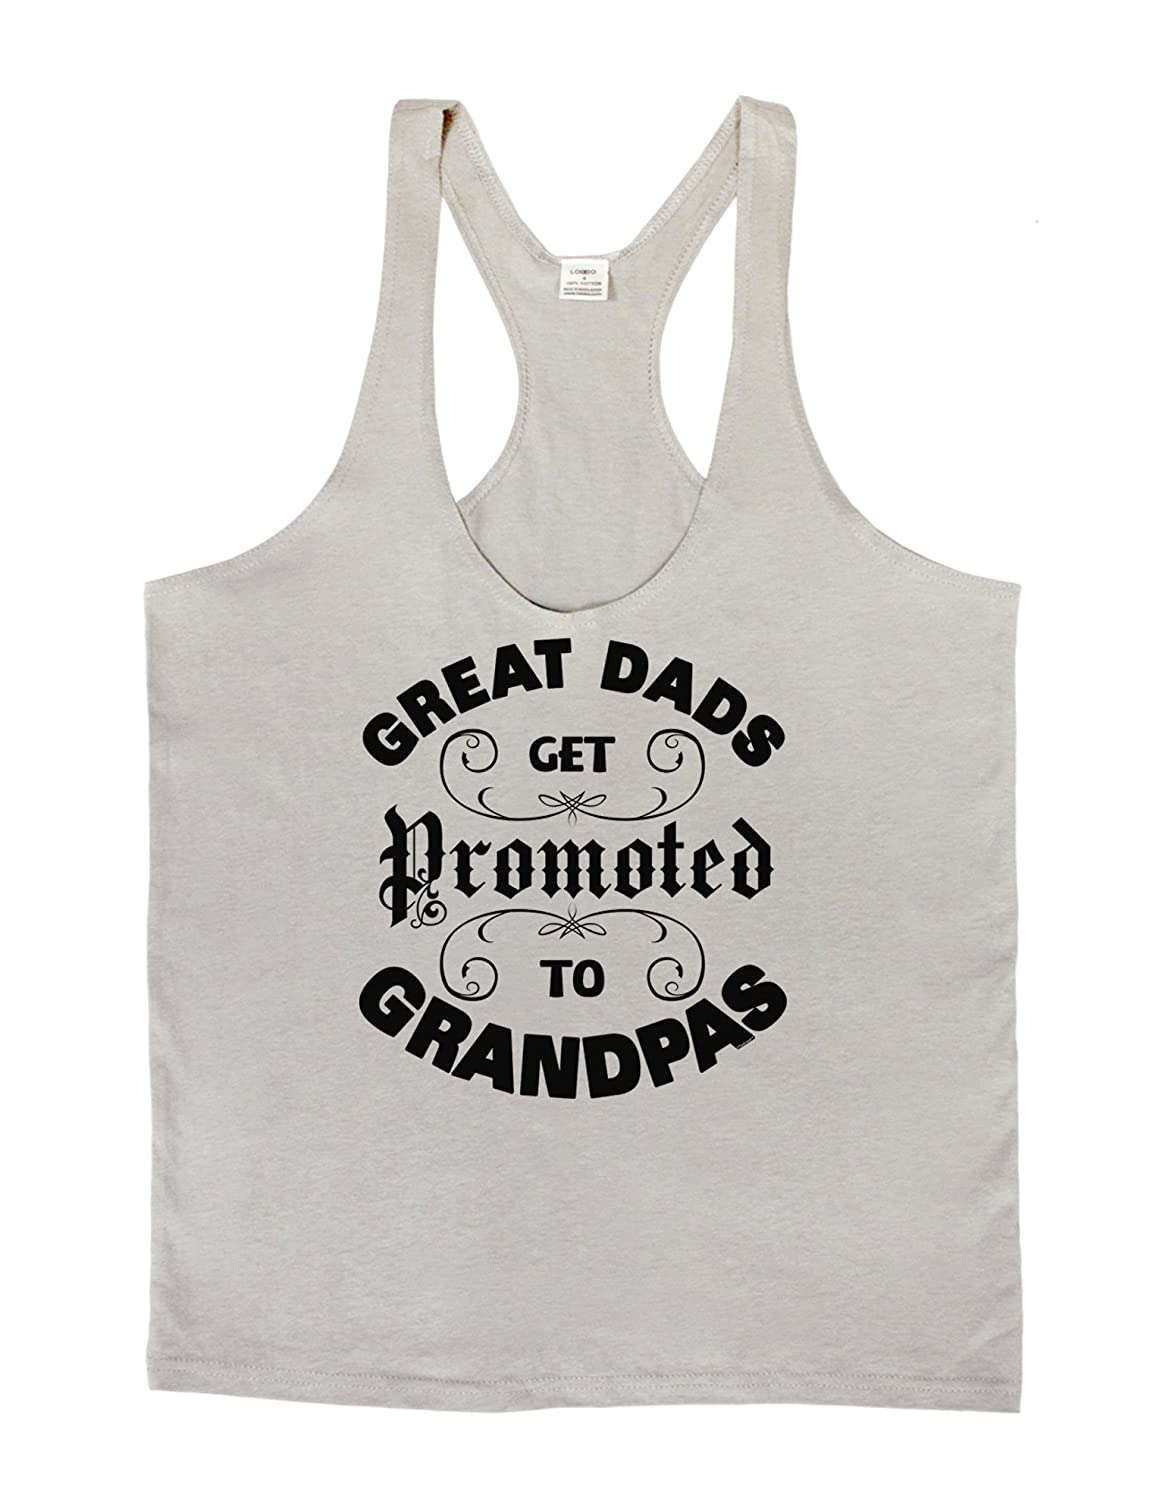 Great Dads get Promoted to Grandpas Mens String Tank Top